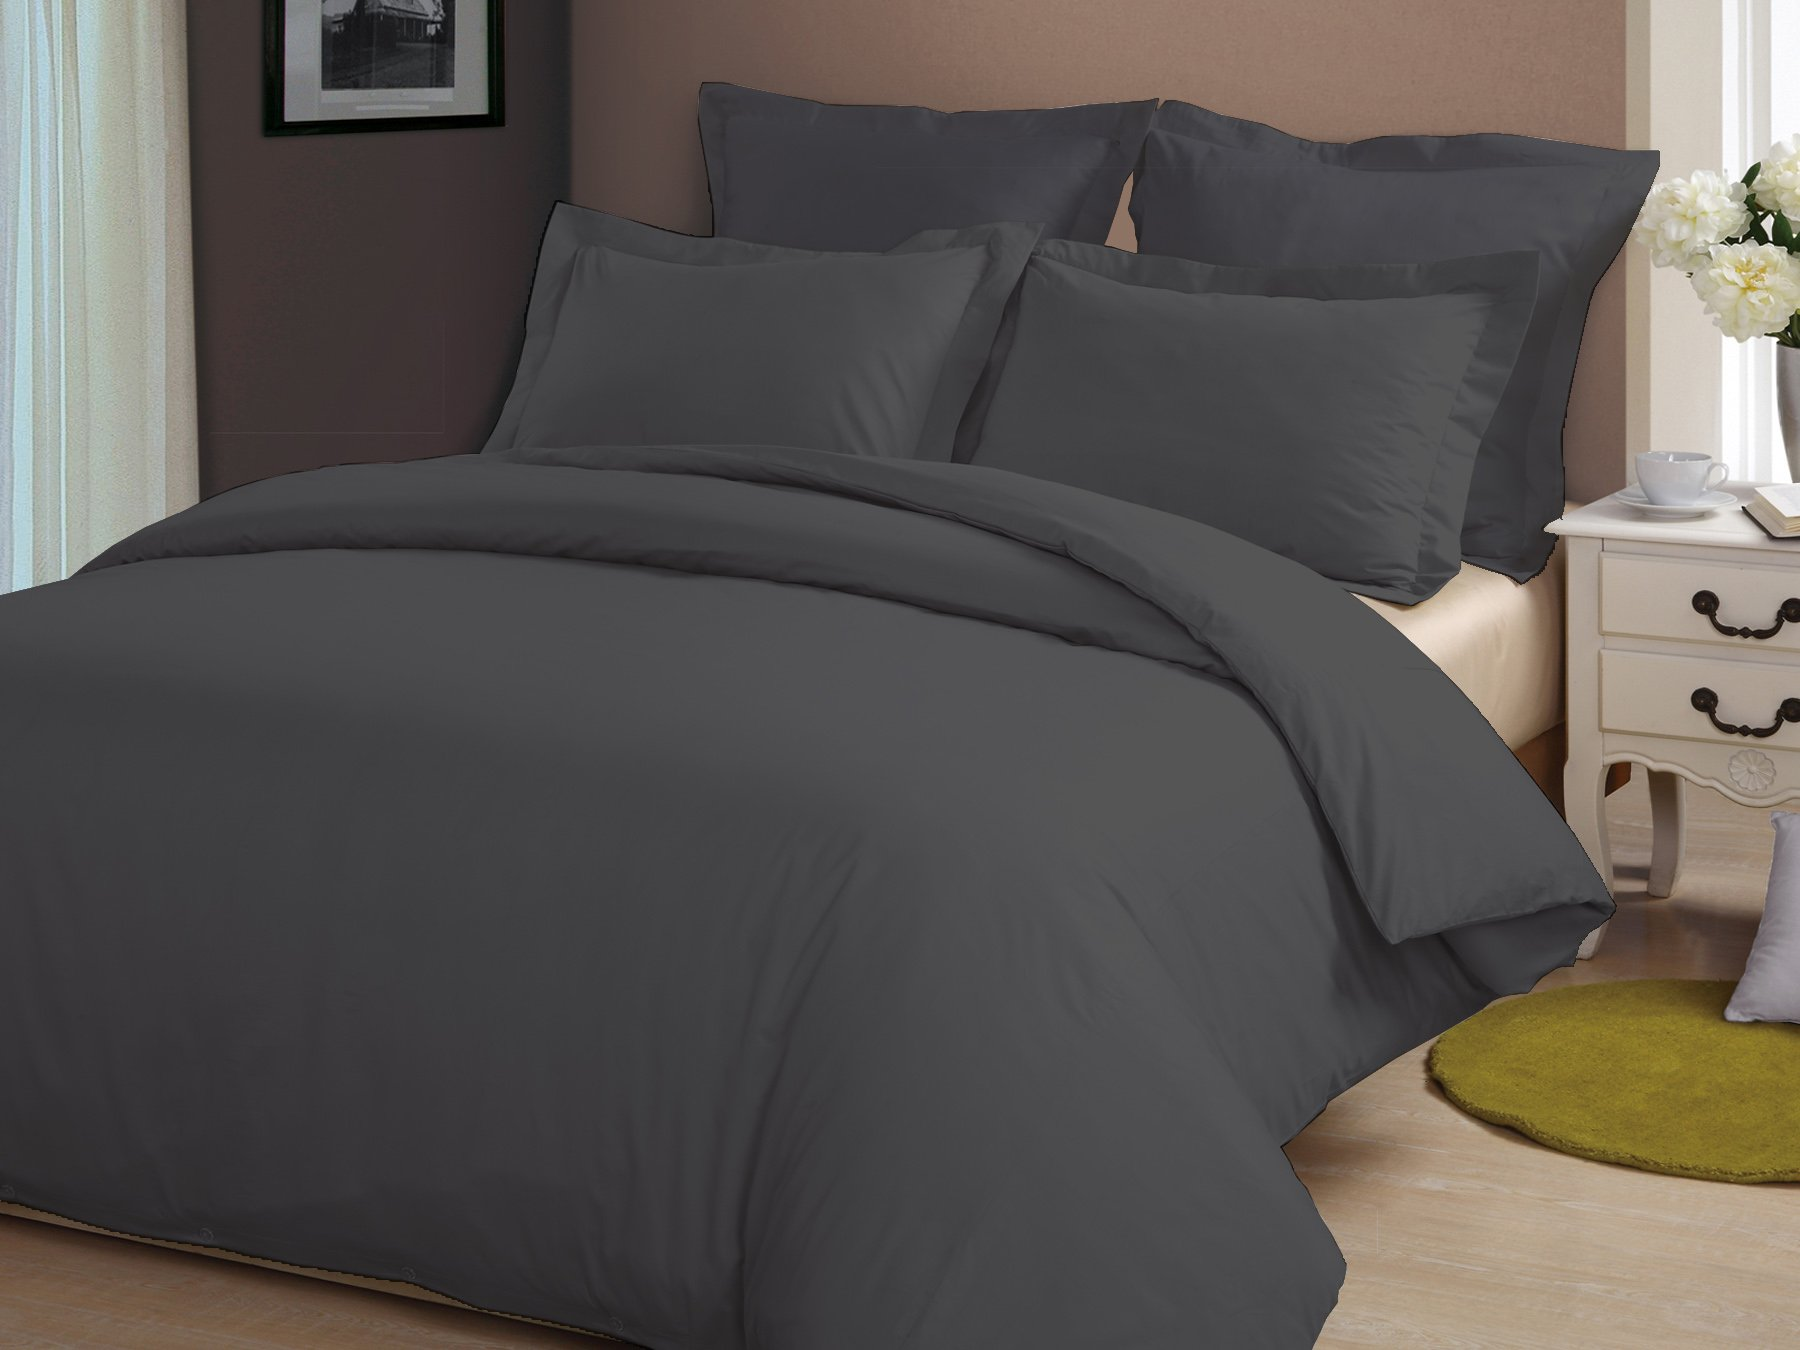 Bedding Homes 100% Egyptian Cotton 5 PC Duvet Set, Fluffy and Luxurious, 600 TC Duvet cover set, 1 Duvet cover, 4 Pillow Shams, Premium Quality bedding, Made in India.(Queen, Elephant Grey)